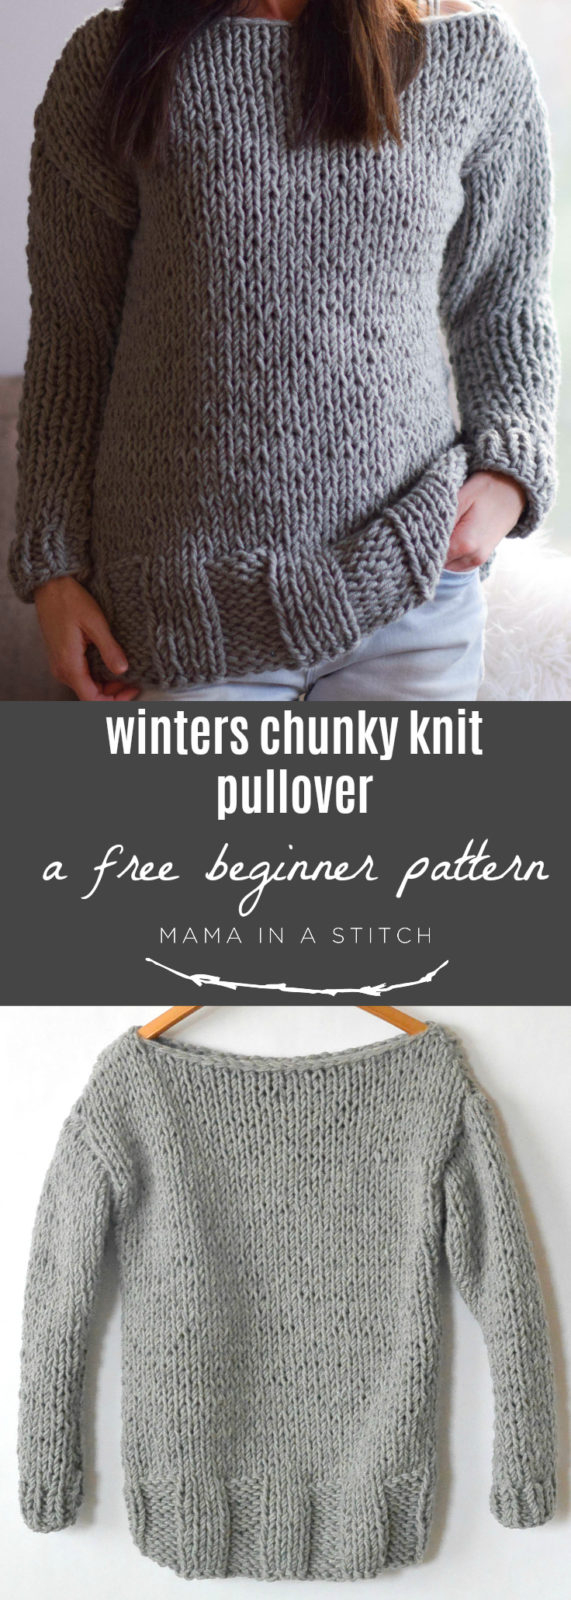 Free Knitting Patterns For Super Chunky Yarn Winters Chunky Easy Knit Pullover Pattern Mama In A Stitch